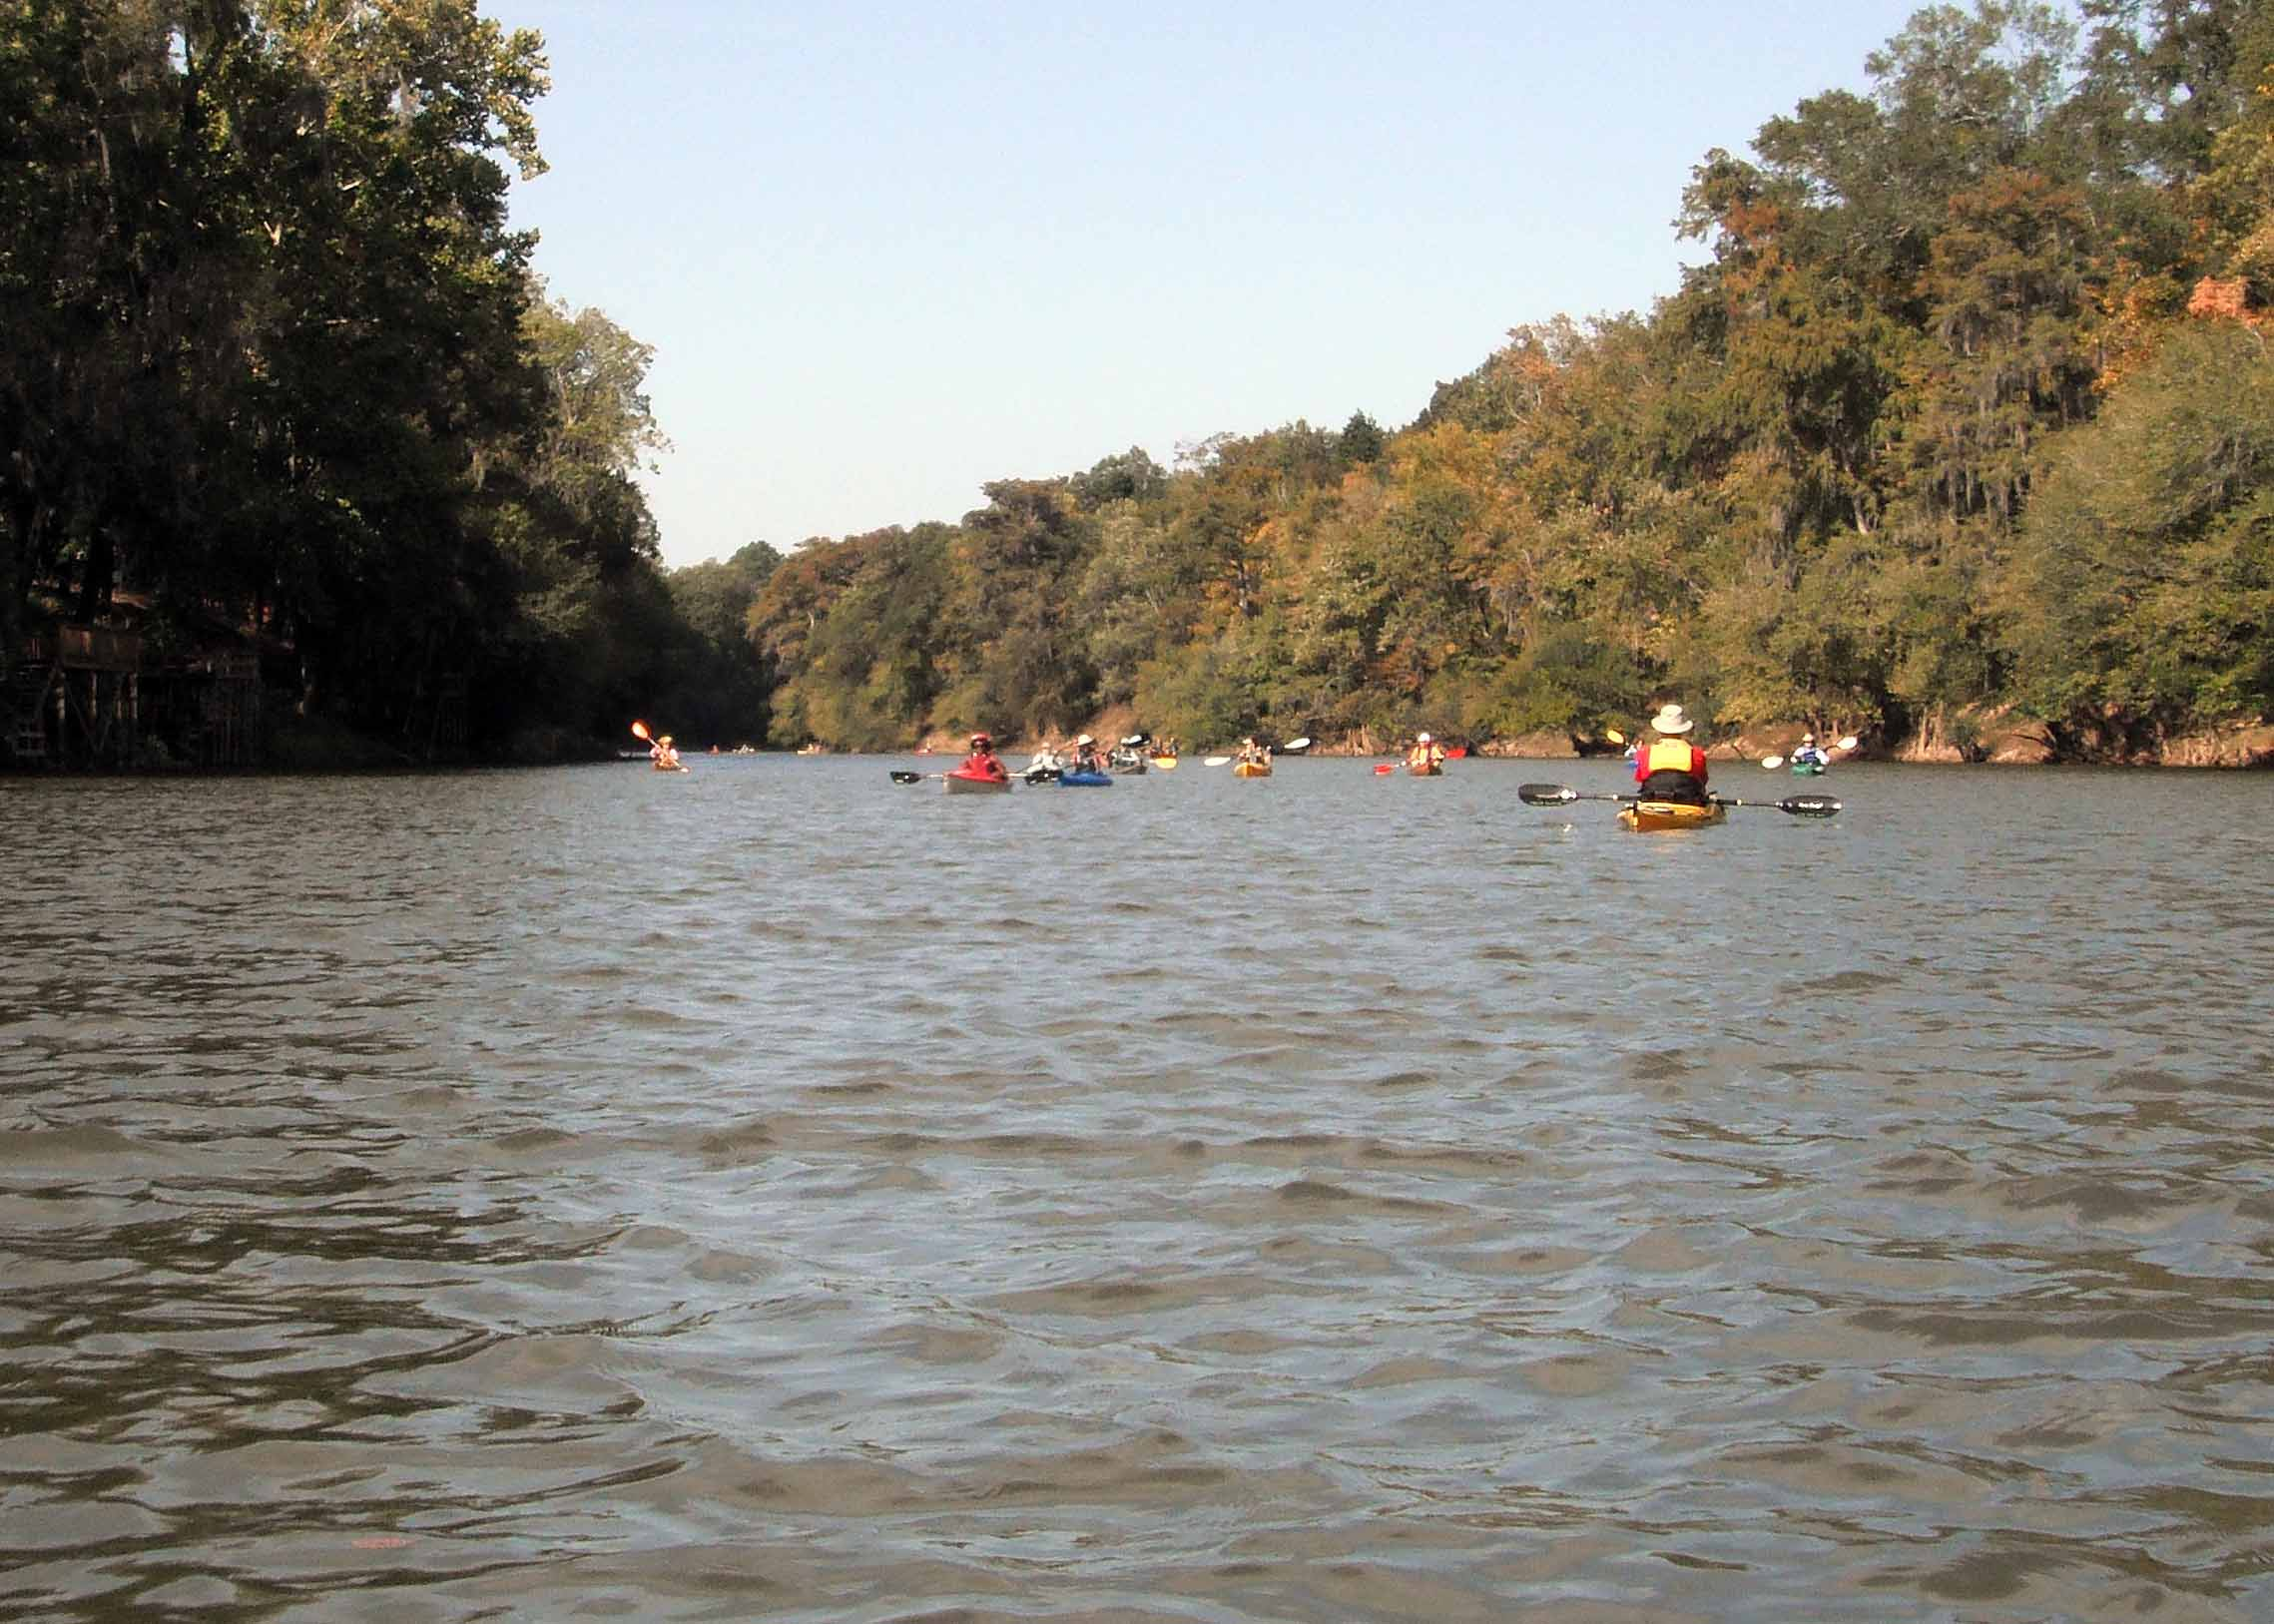 Ocmulgee_River_107-9_1